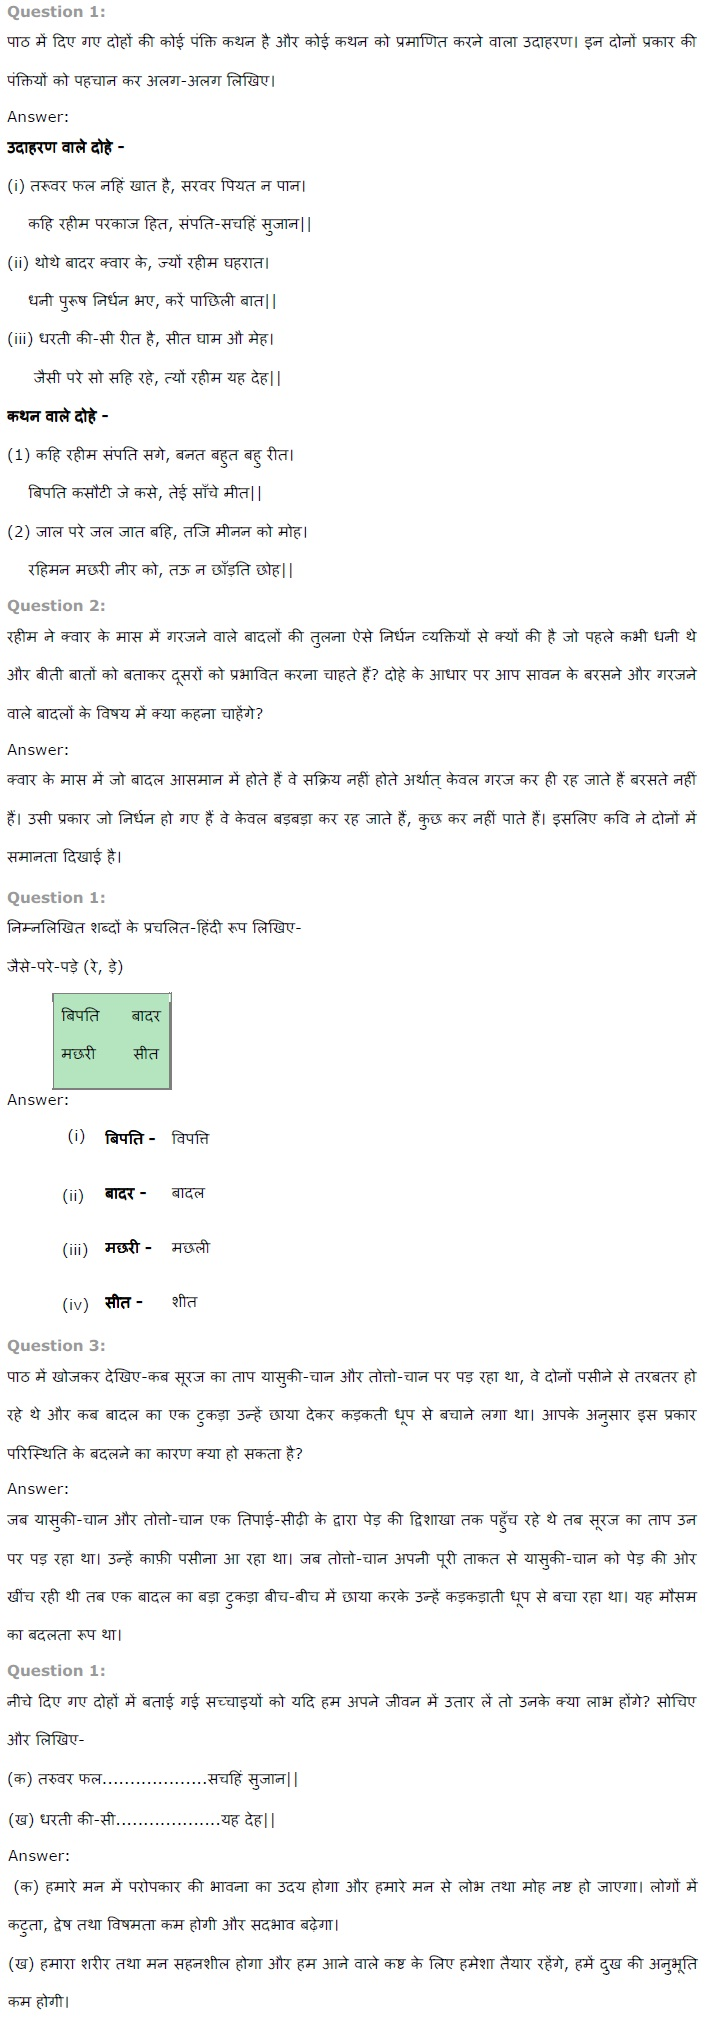 NCERT Solutions for Class 7th Hindi Chapter 11 रहीम की दोहे